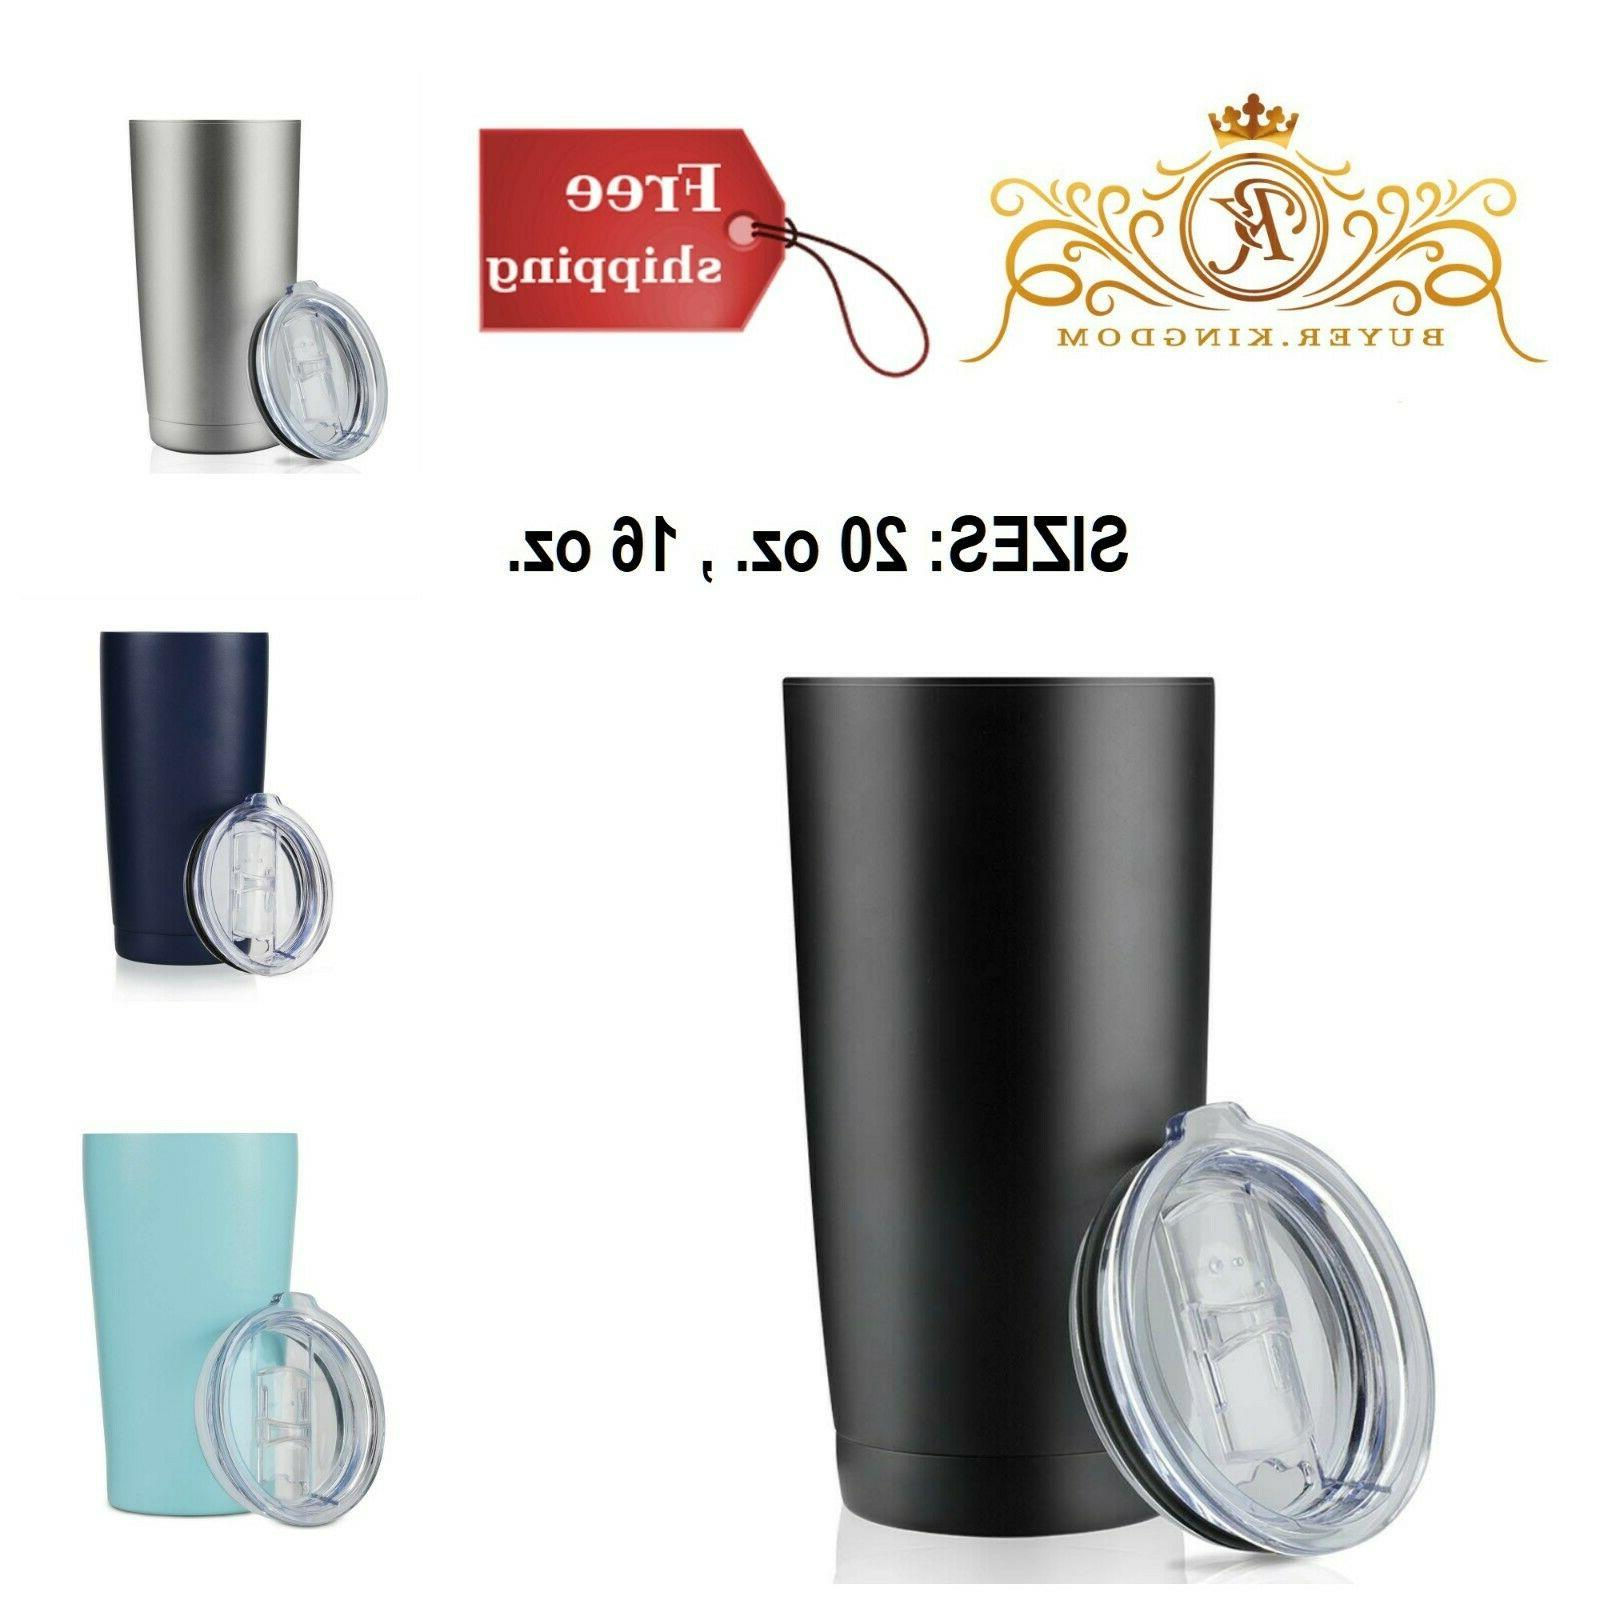 tumblers insulated stainless steel double wall travel